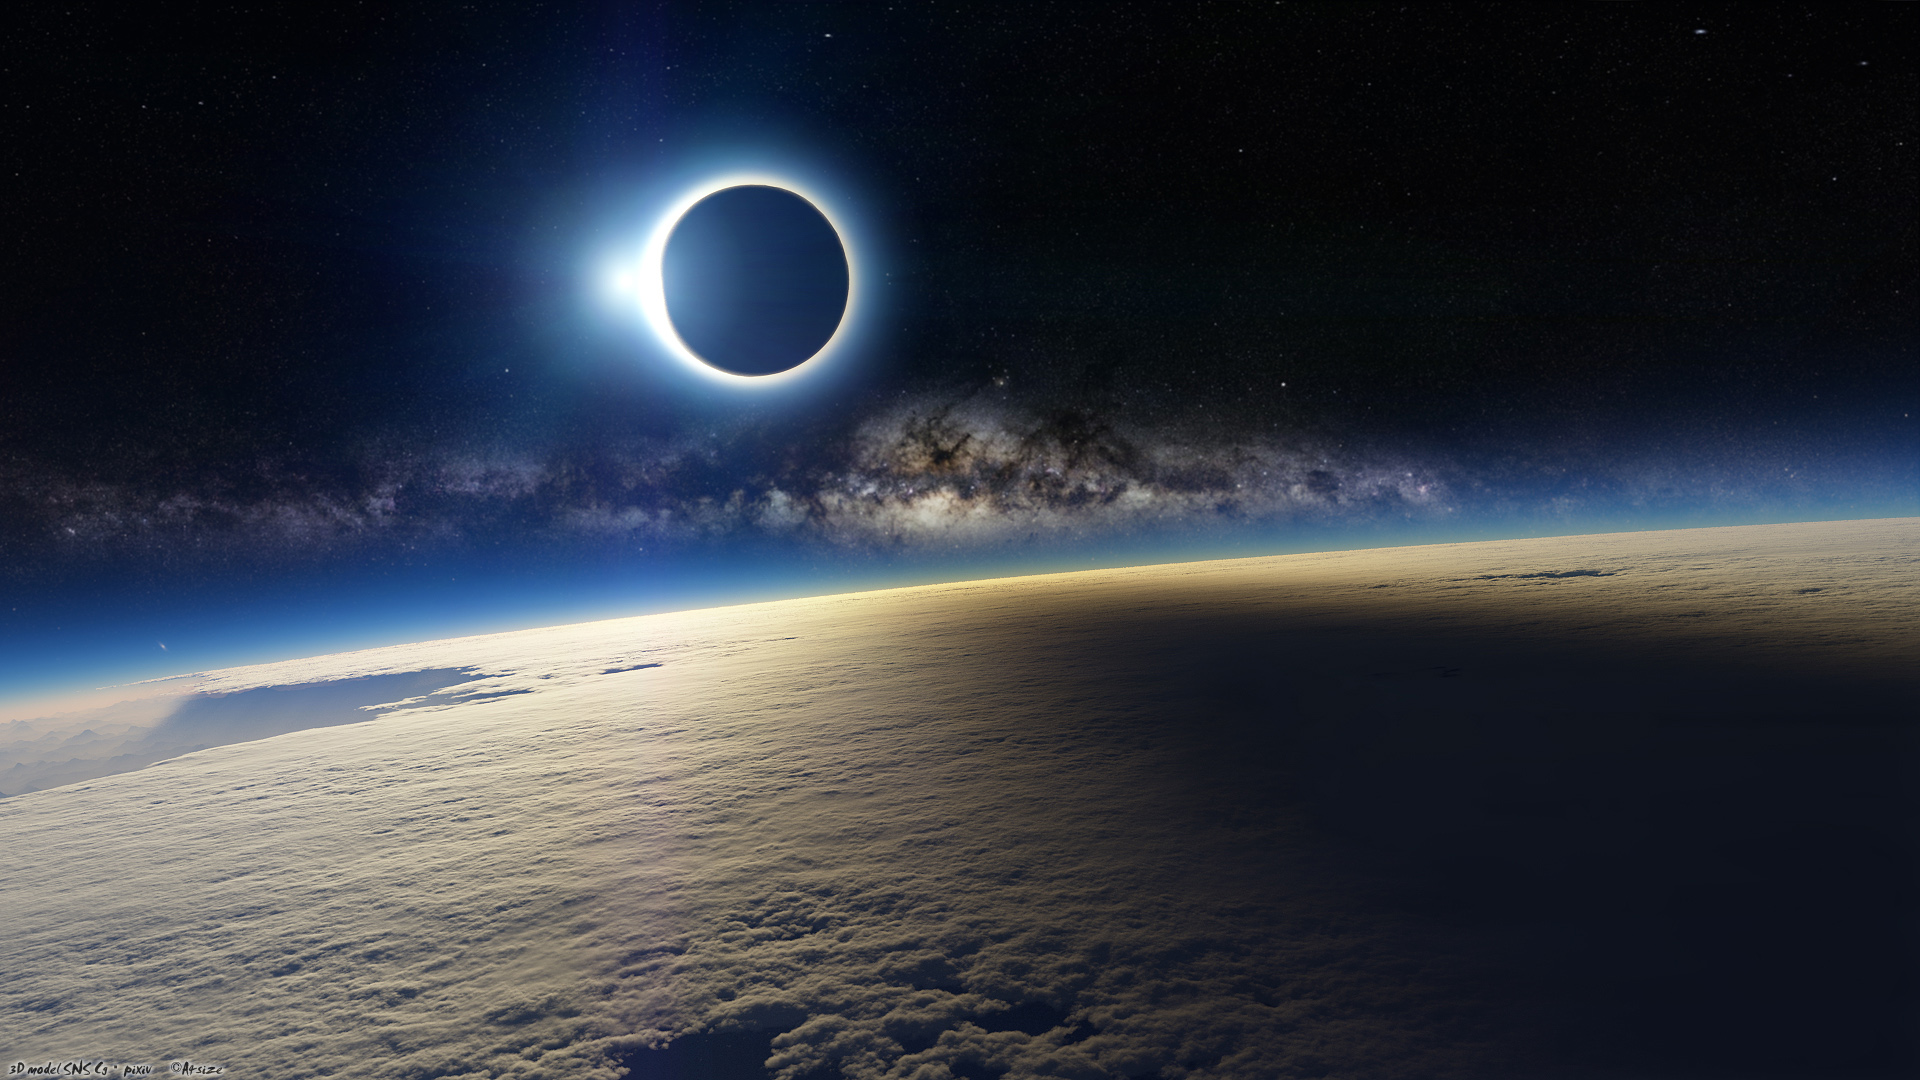 Lunar-Eclipse-Images-HD-Wallpapers